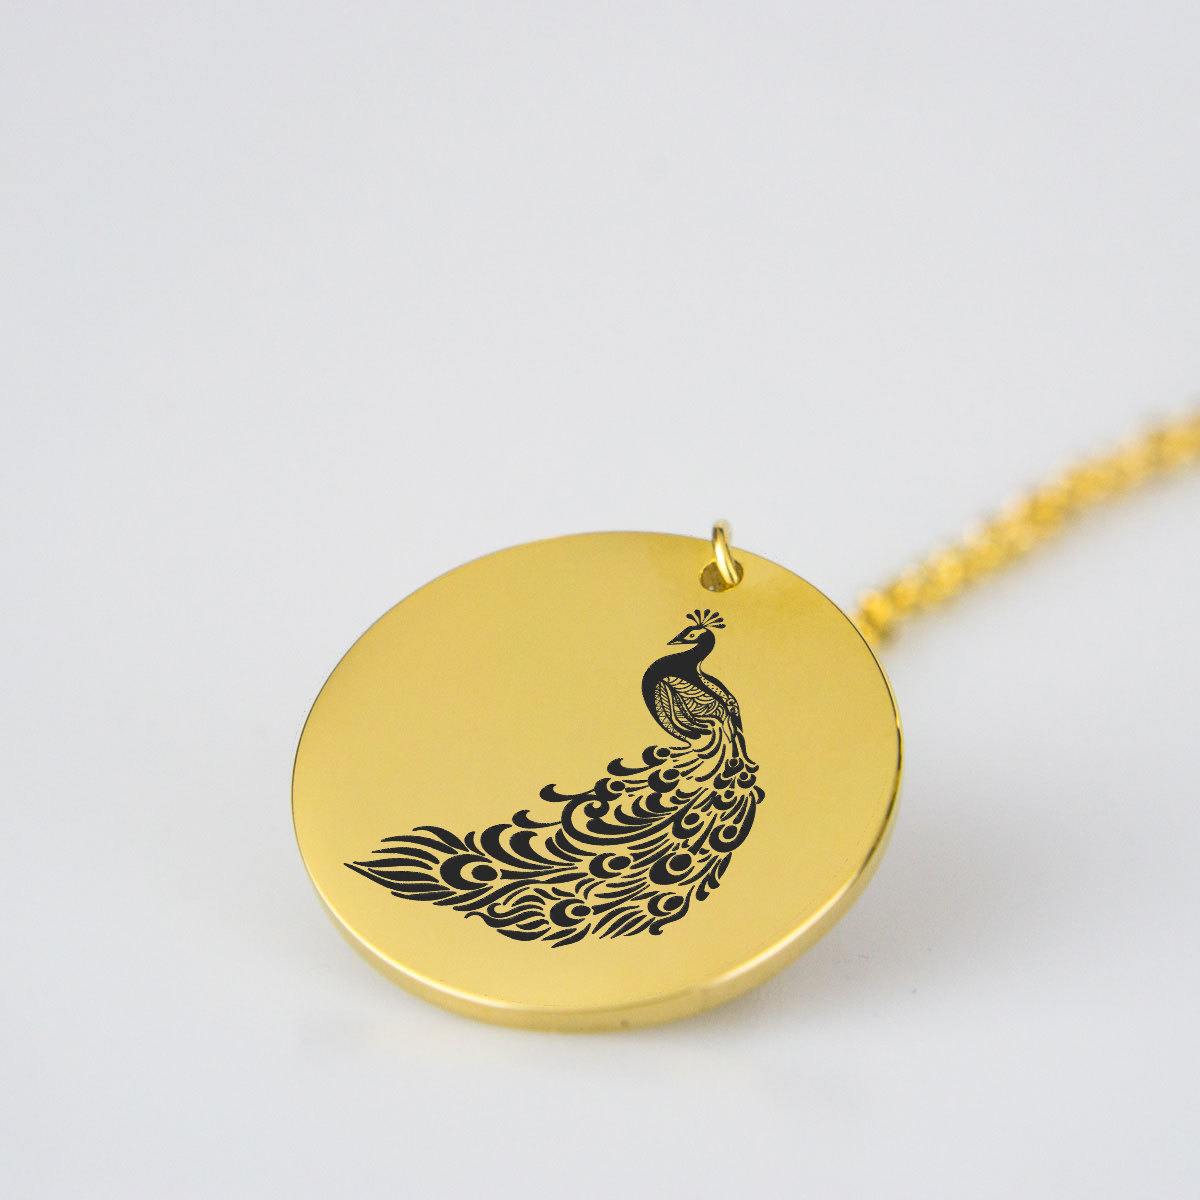 Engraved Peacock Charm Necklace